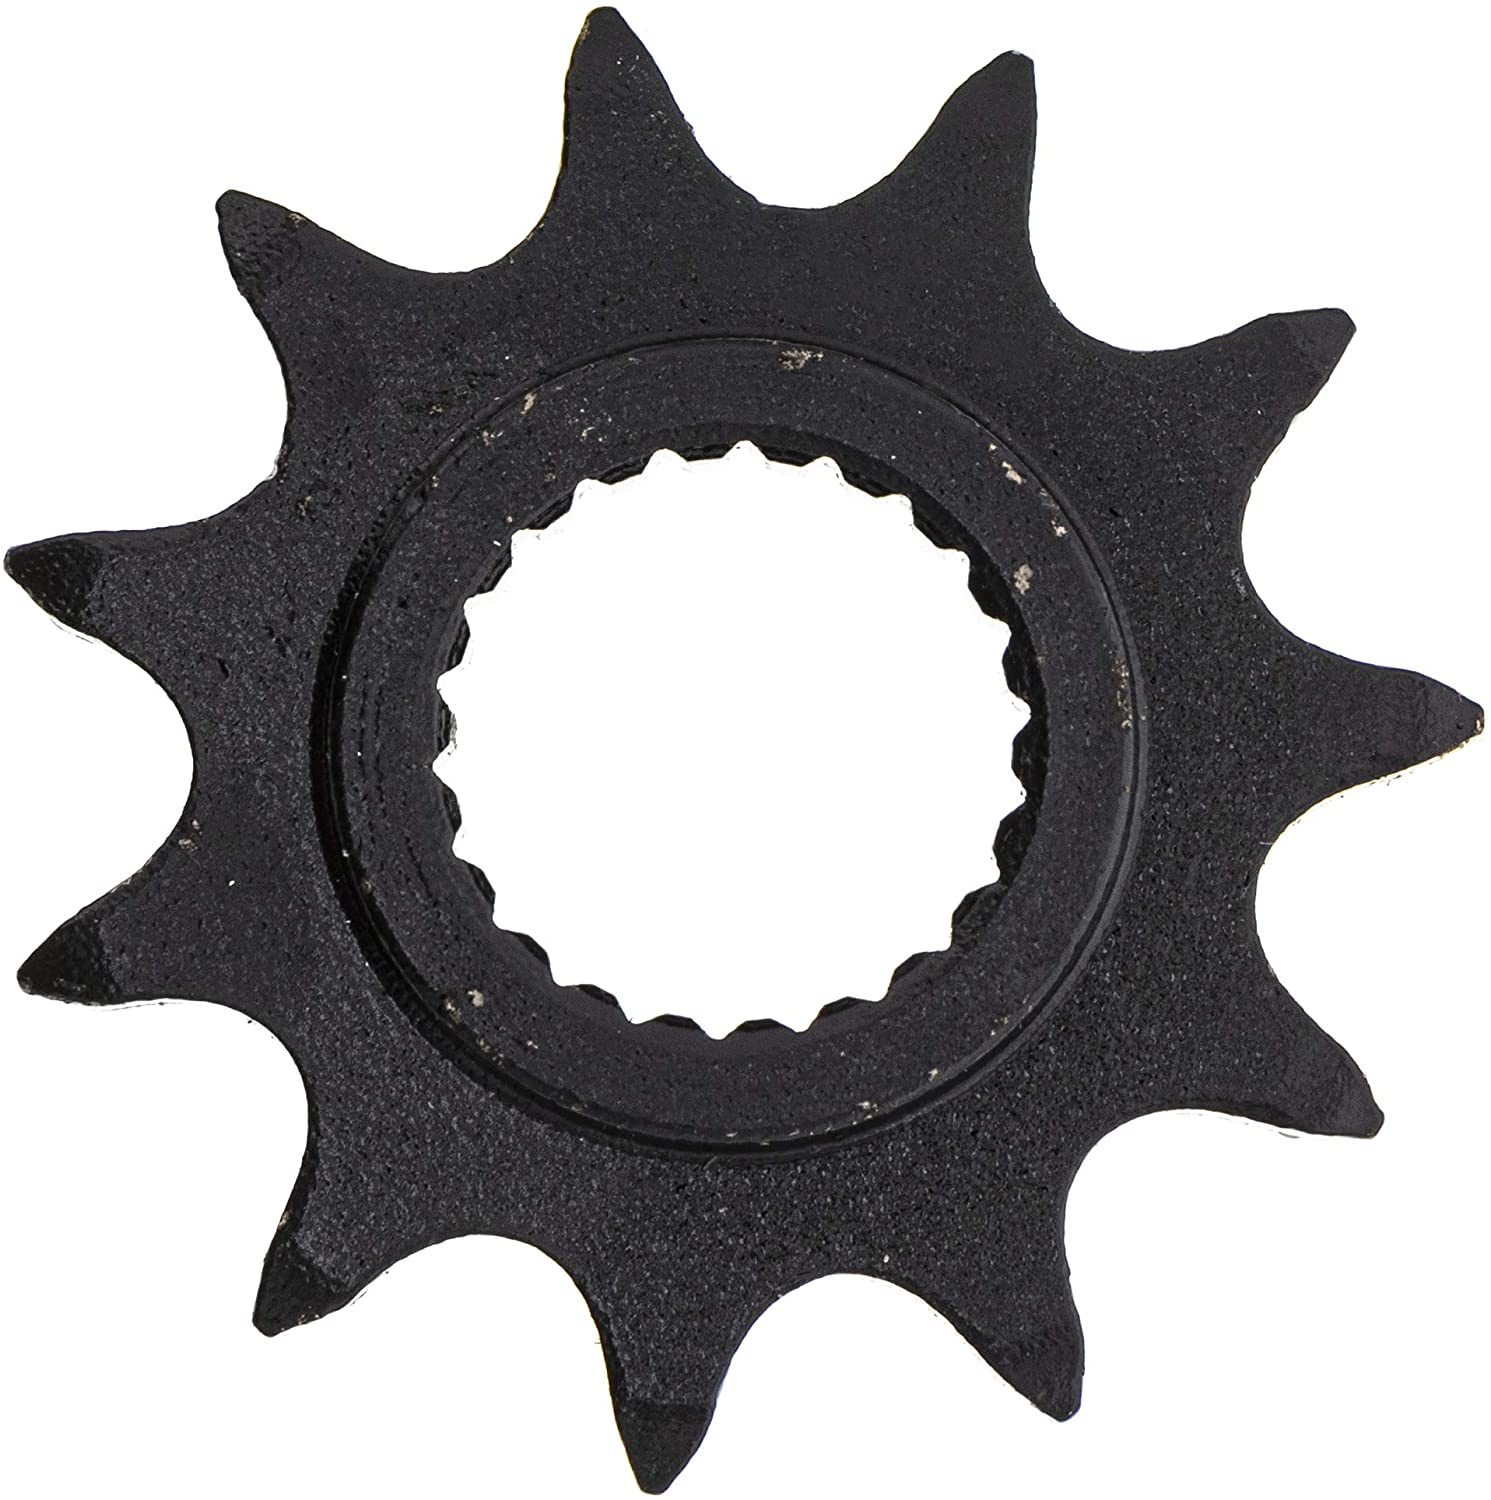 NICHE 520 Pitch 11 Tooth Front Drive Sprocket For 1987-2013 Polaris Scrambler 500 Trail Blazer 250 Trail Boss 250 Magnum 425